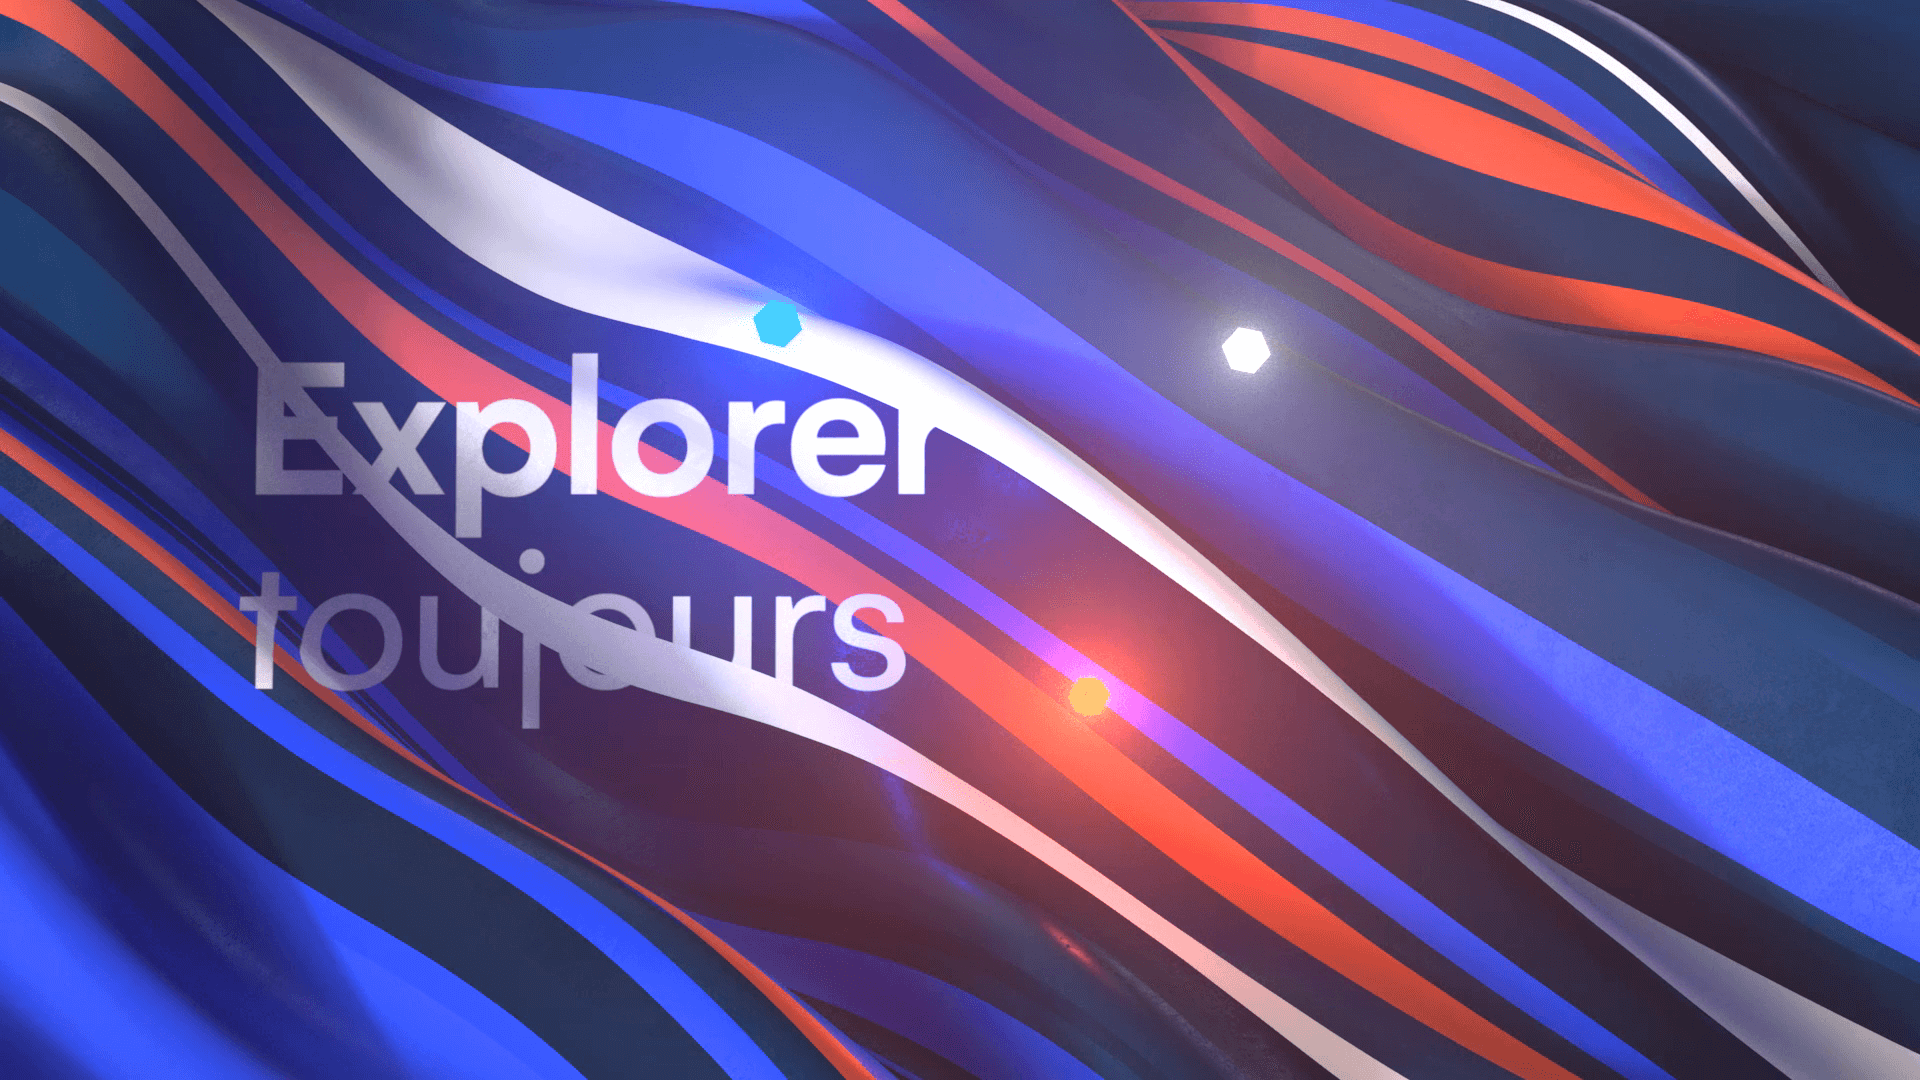 Abstract 3D background with multiple waves of colors for a motion design film